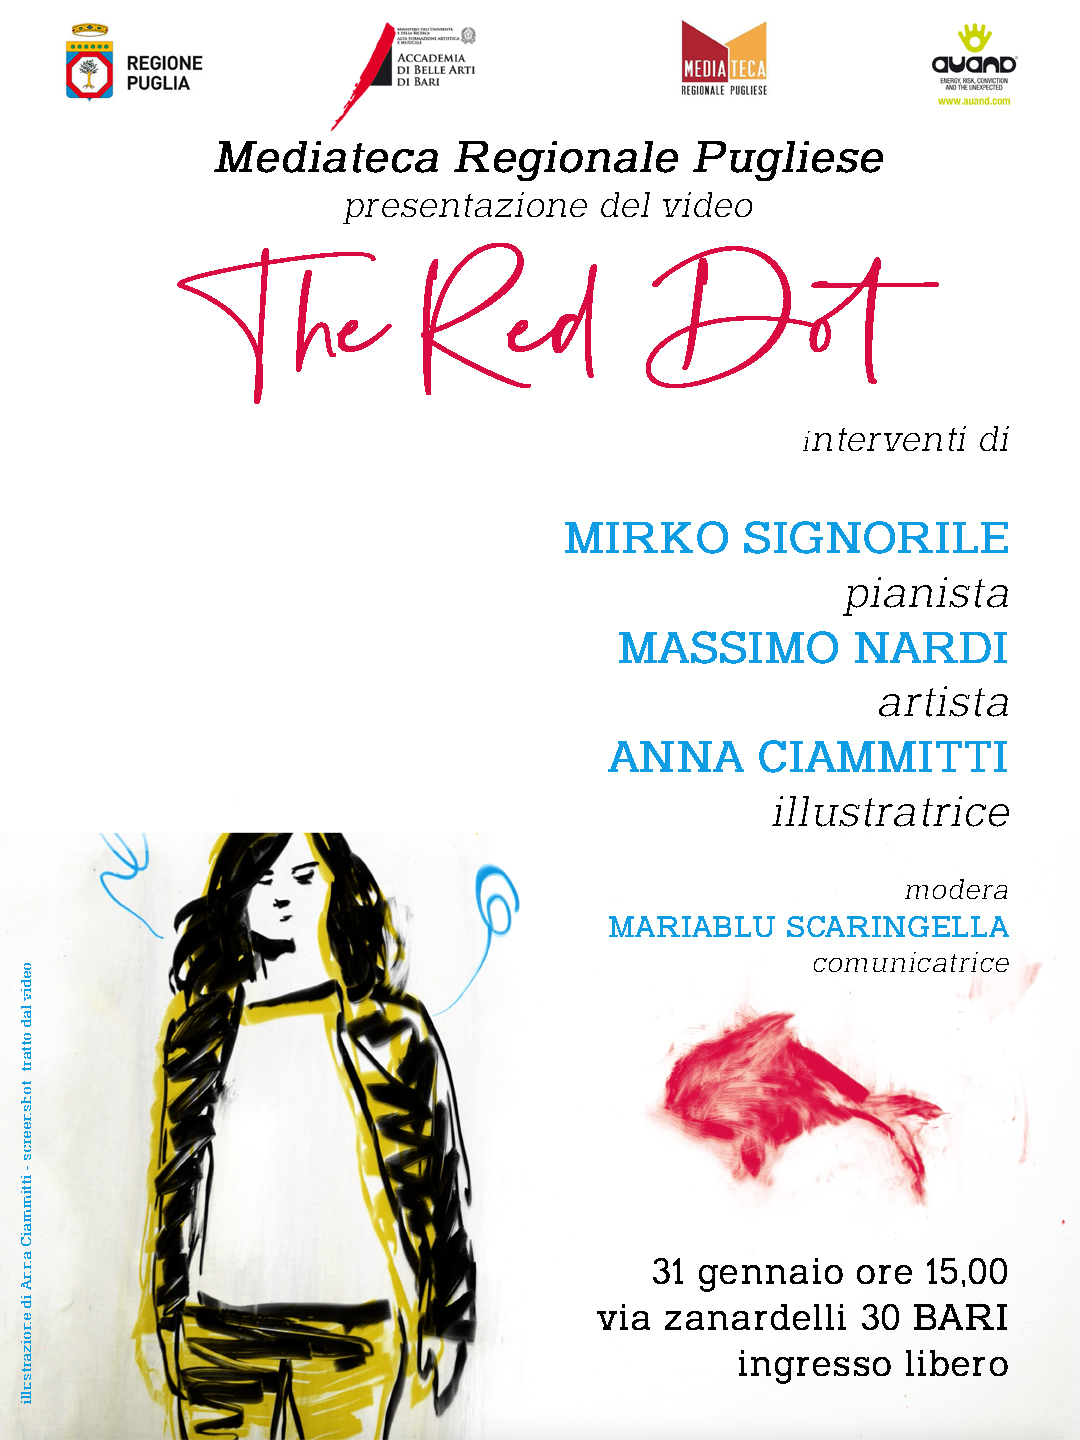 THE RED DOT, IL VIDEO